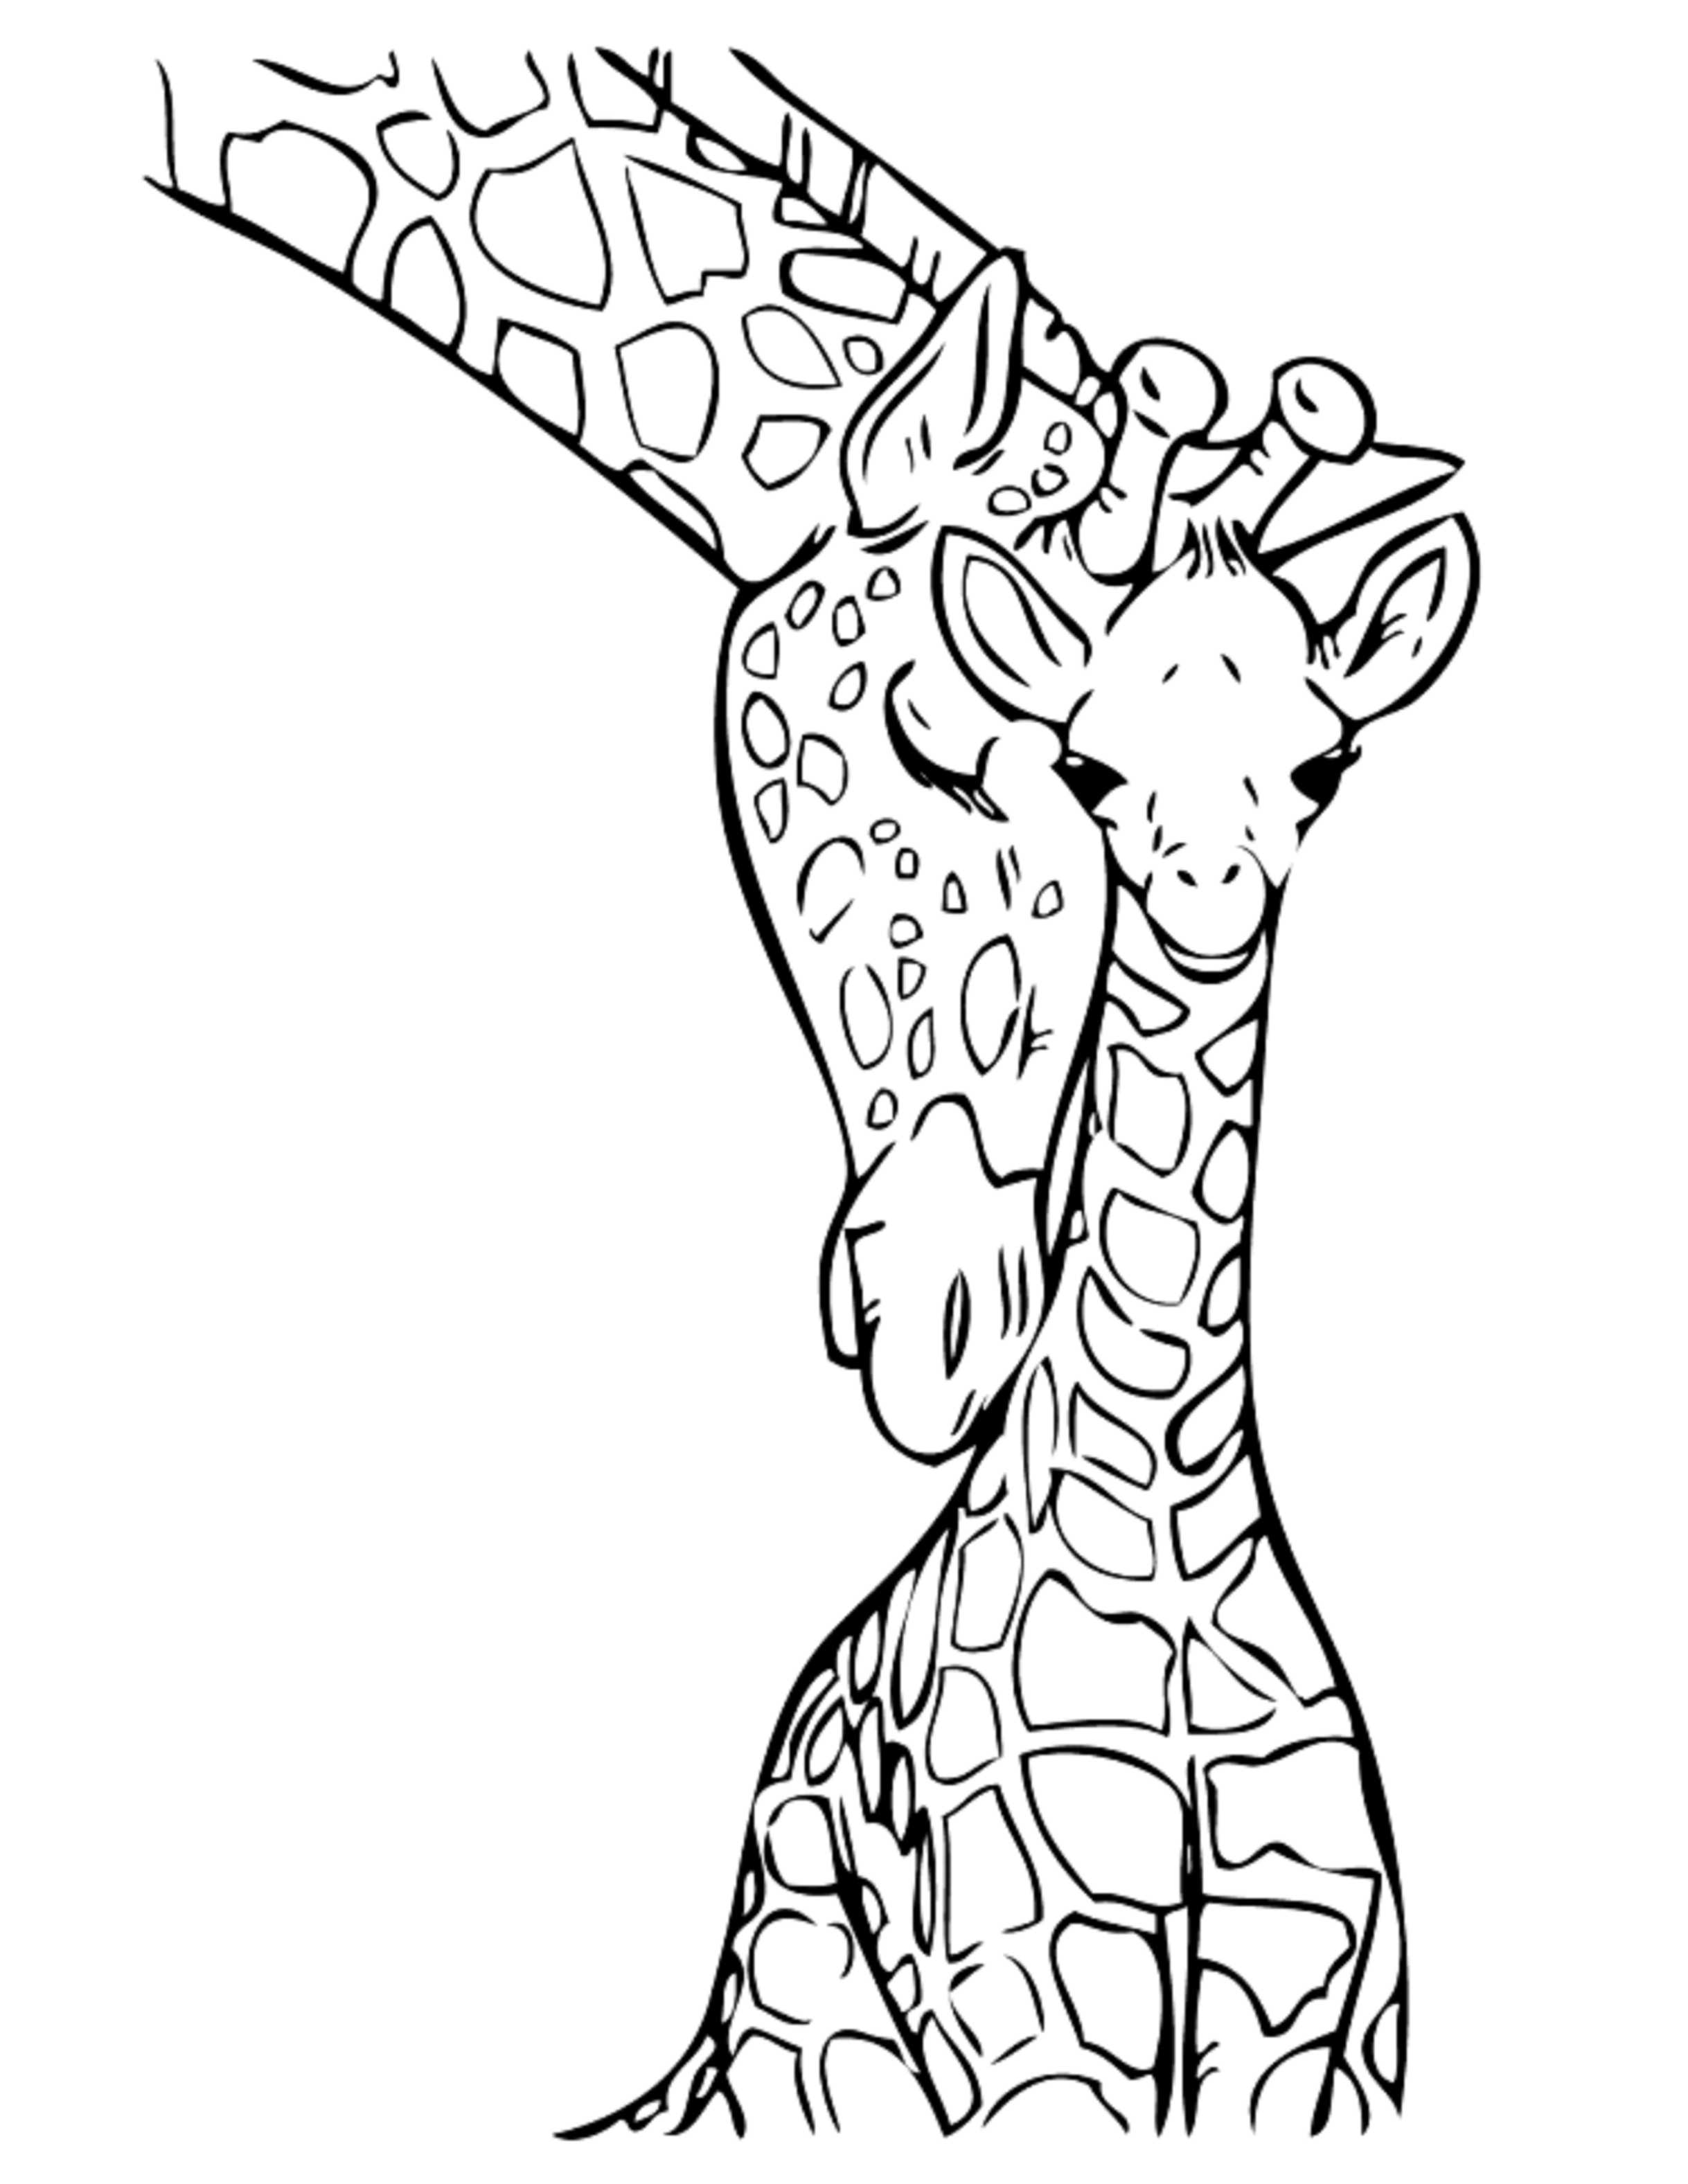 coloring pages giraffe free giraffe coloring pages coloring giraffe pages